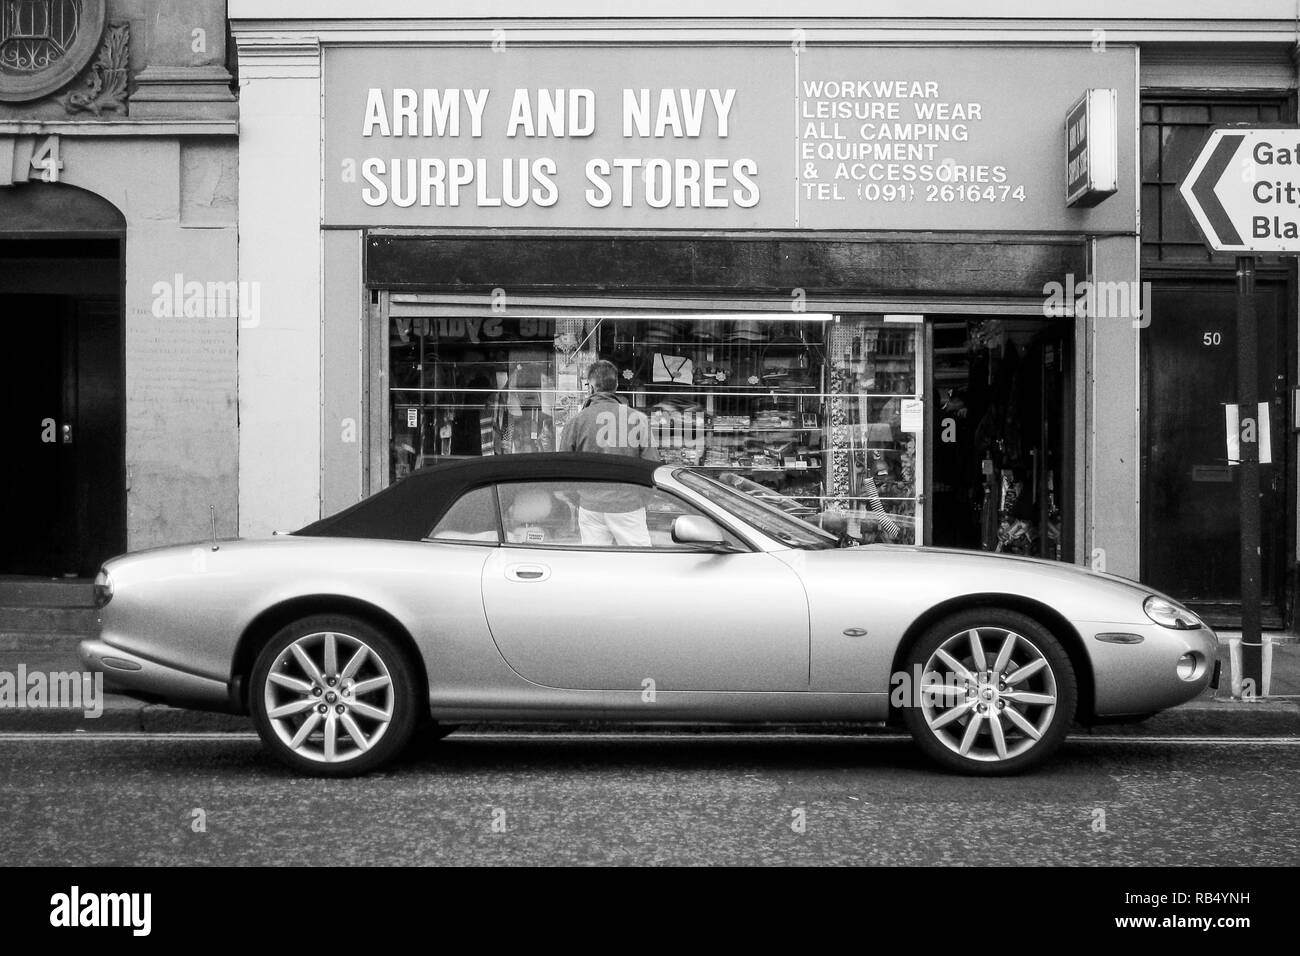 A man standing behind a Jaguar sports car parked outside an Army and Navy Surplus shop in Newcastle upon Tyne, Tyne and Wear, UK - Stock Image